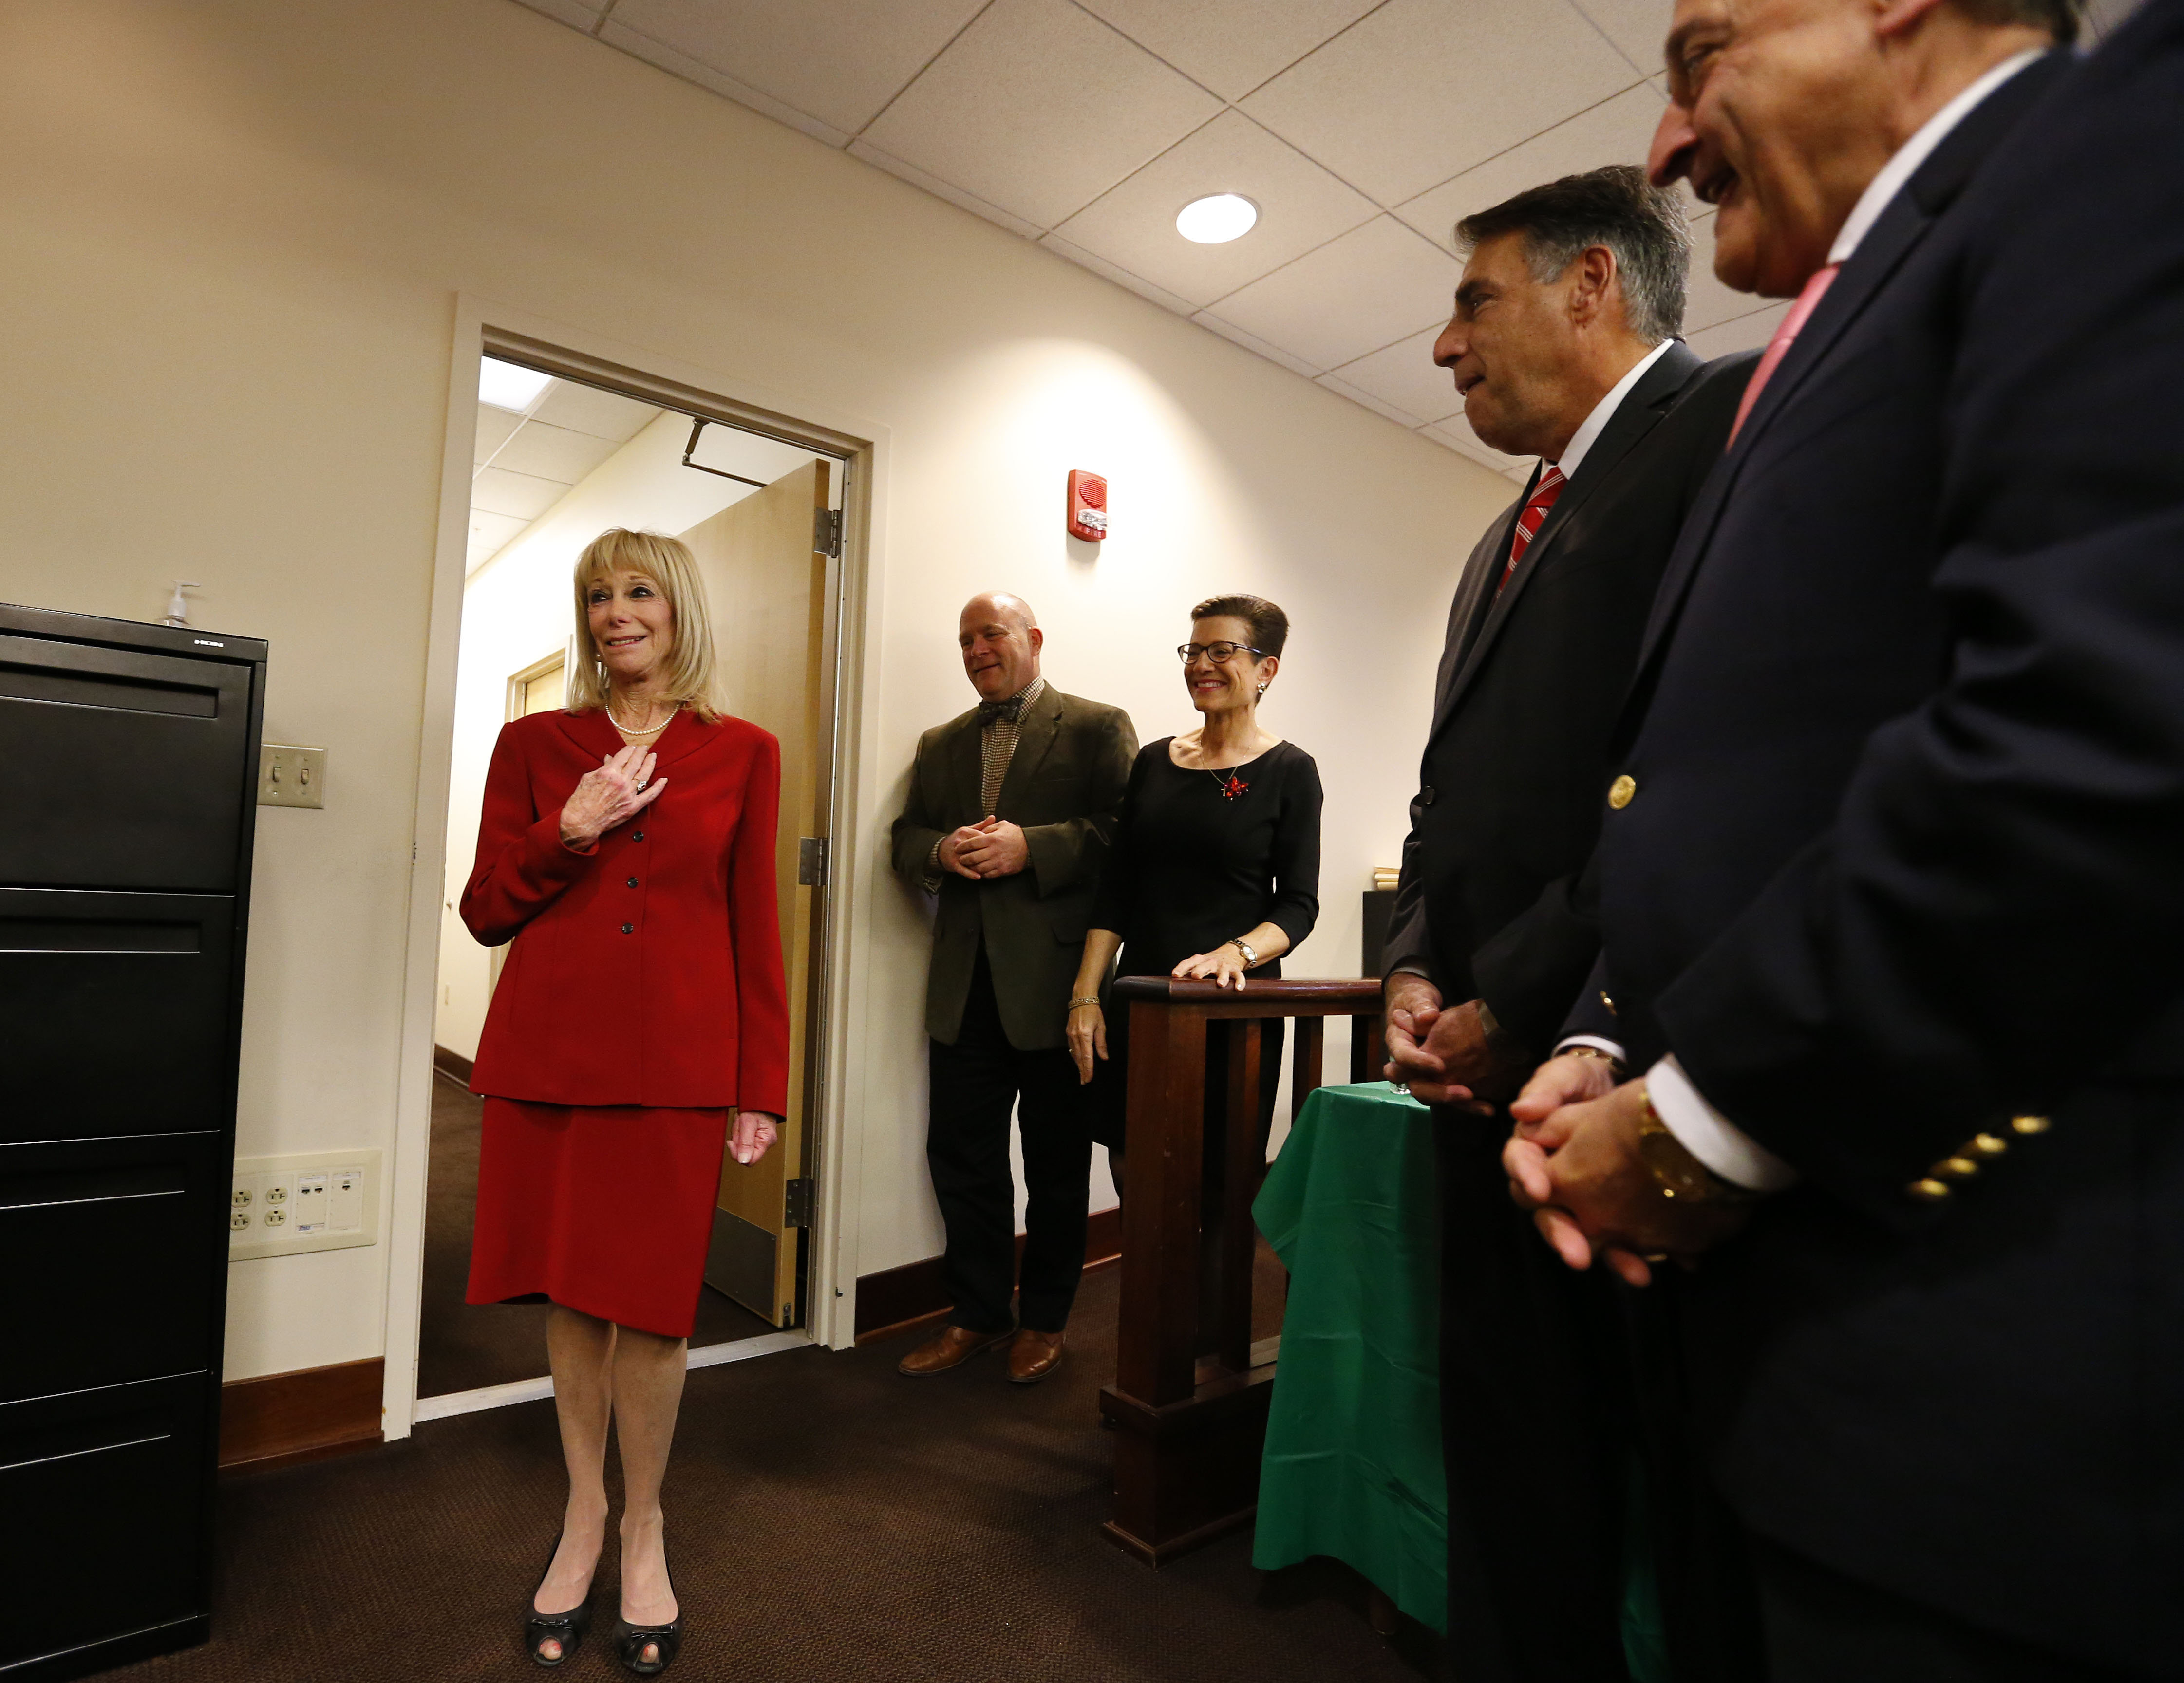 Hon. Penny M. Wolfgang was surprised last week by her colleagues during a gathering for her. (Mark Mulville/Buffalo News)